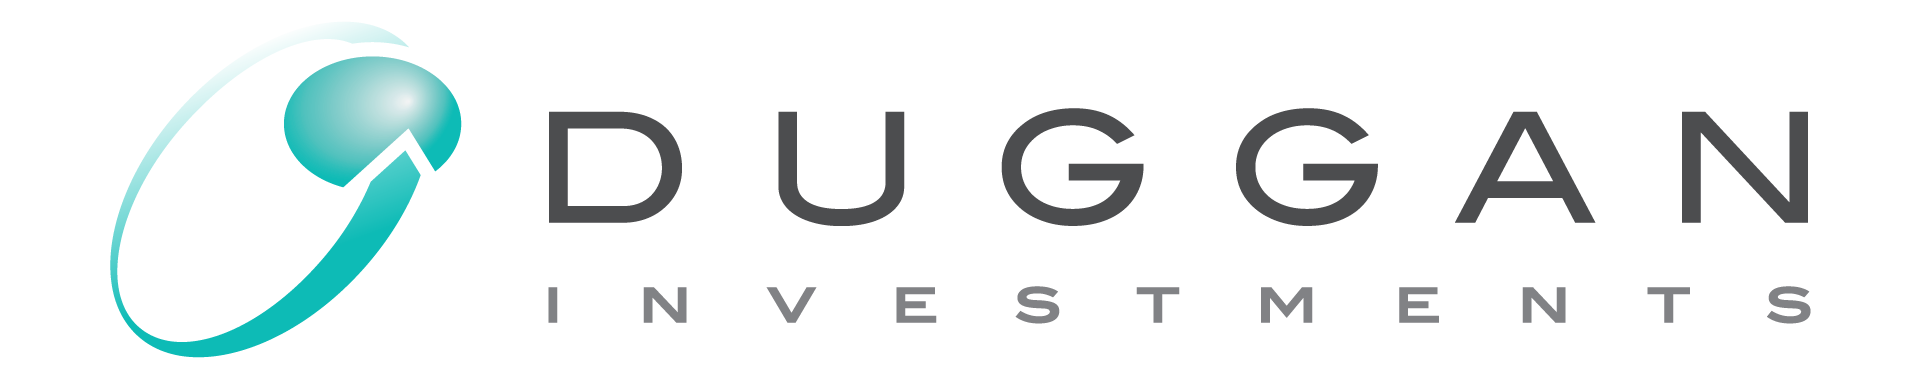 Duggan Investments